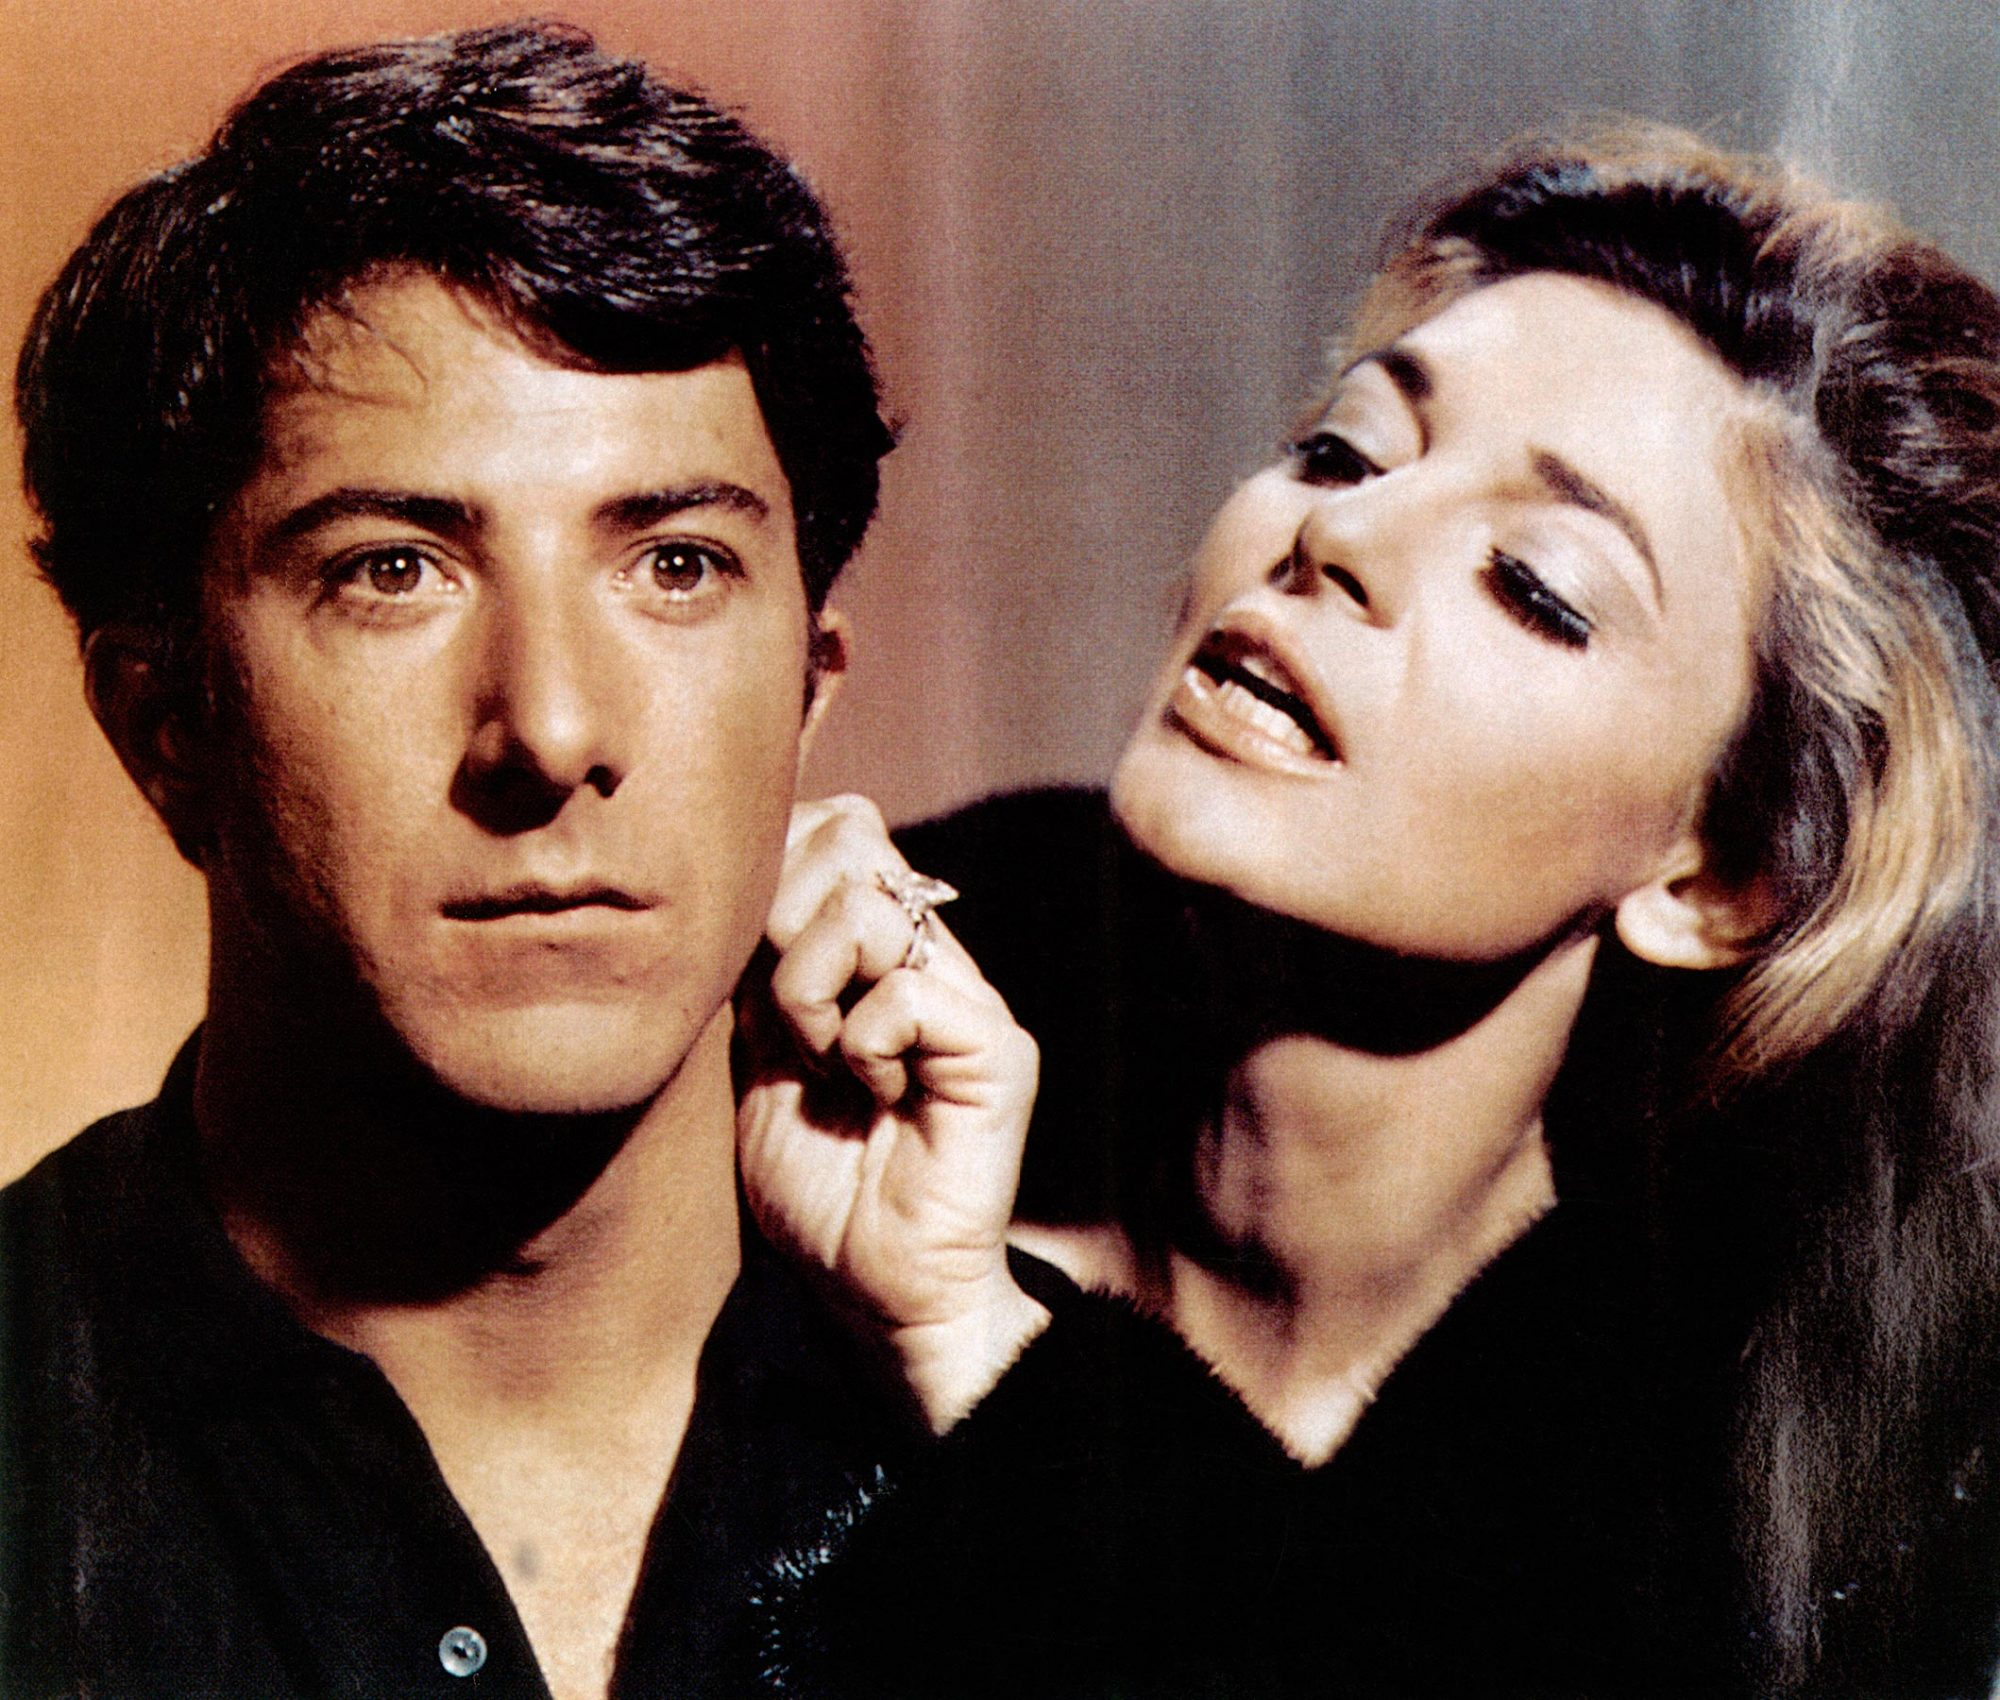 THE GRADUATE, from left, Dustin Hoffman, Anne Bancroft, 1967